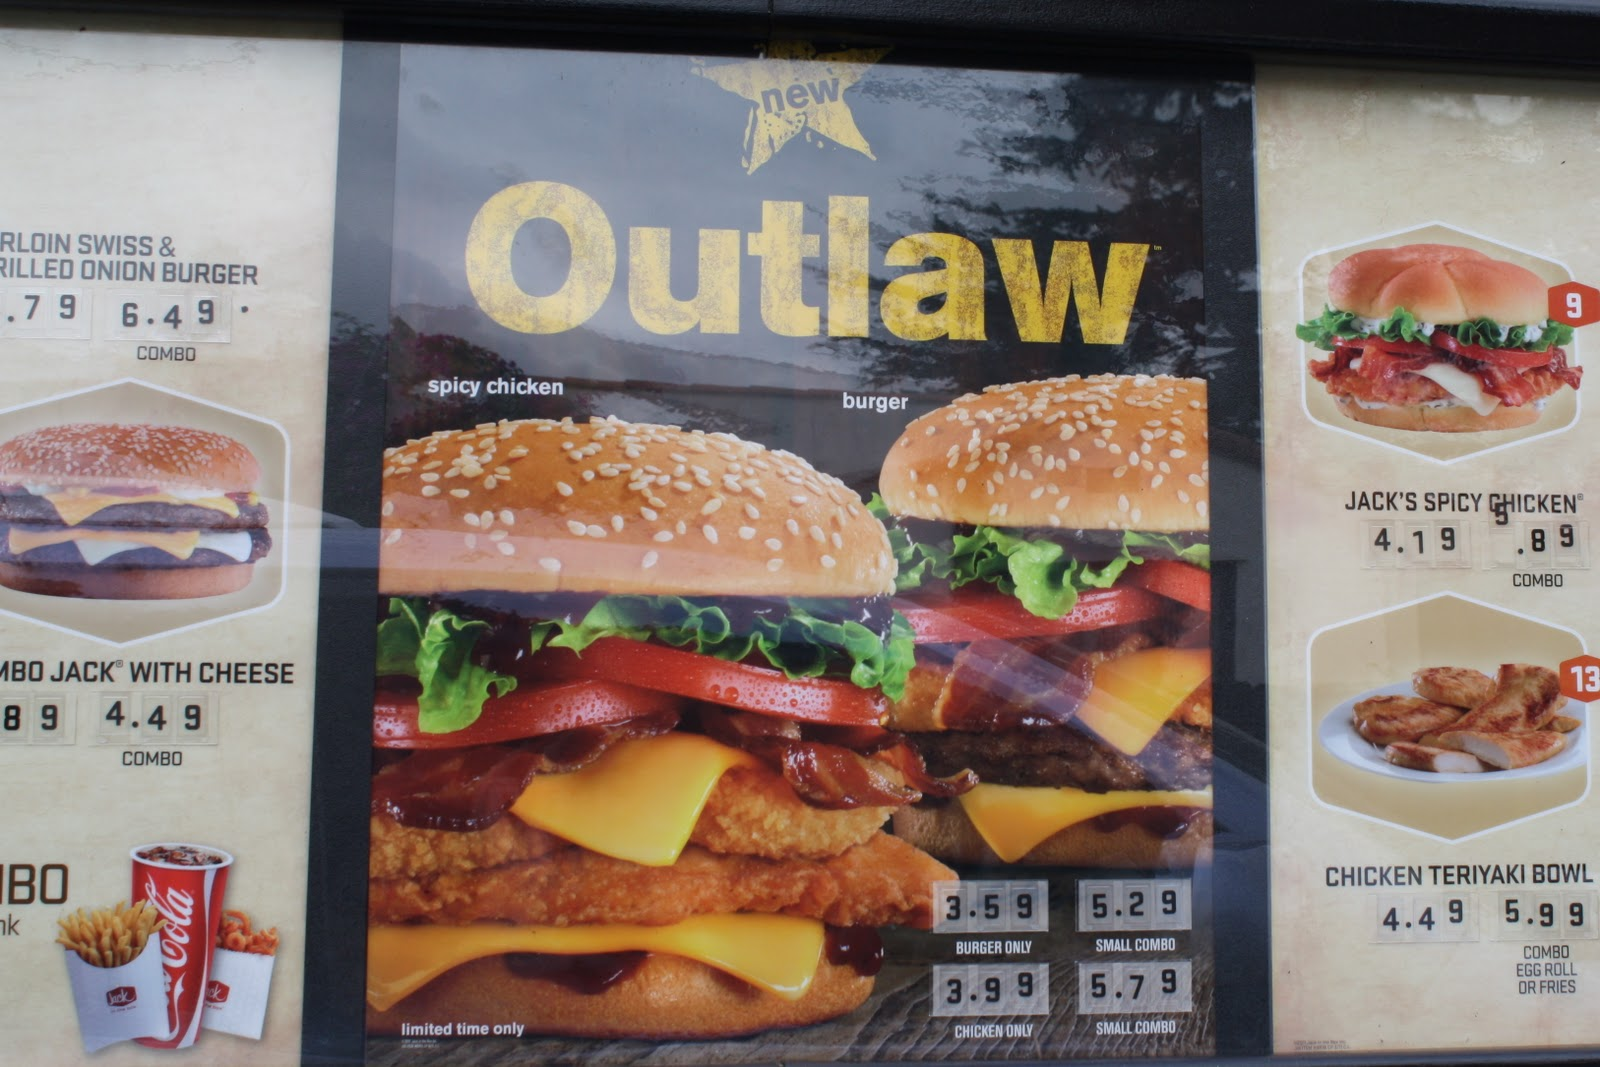 Fast Food Review Jack In The Box OutlawTM Spicy Chicken Sandwich